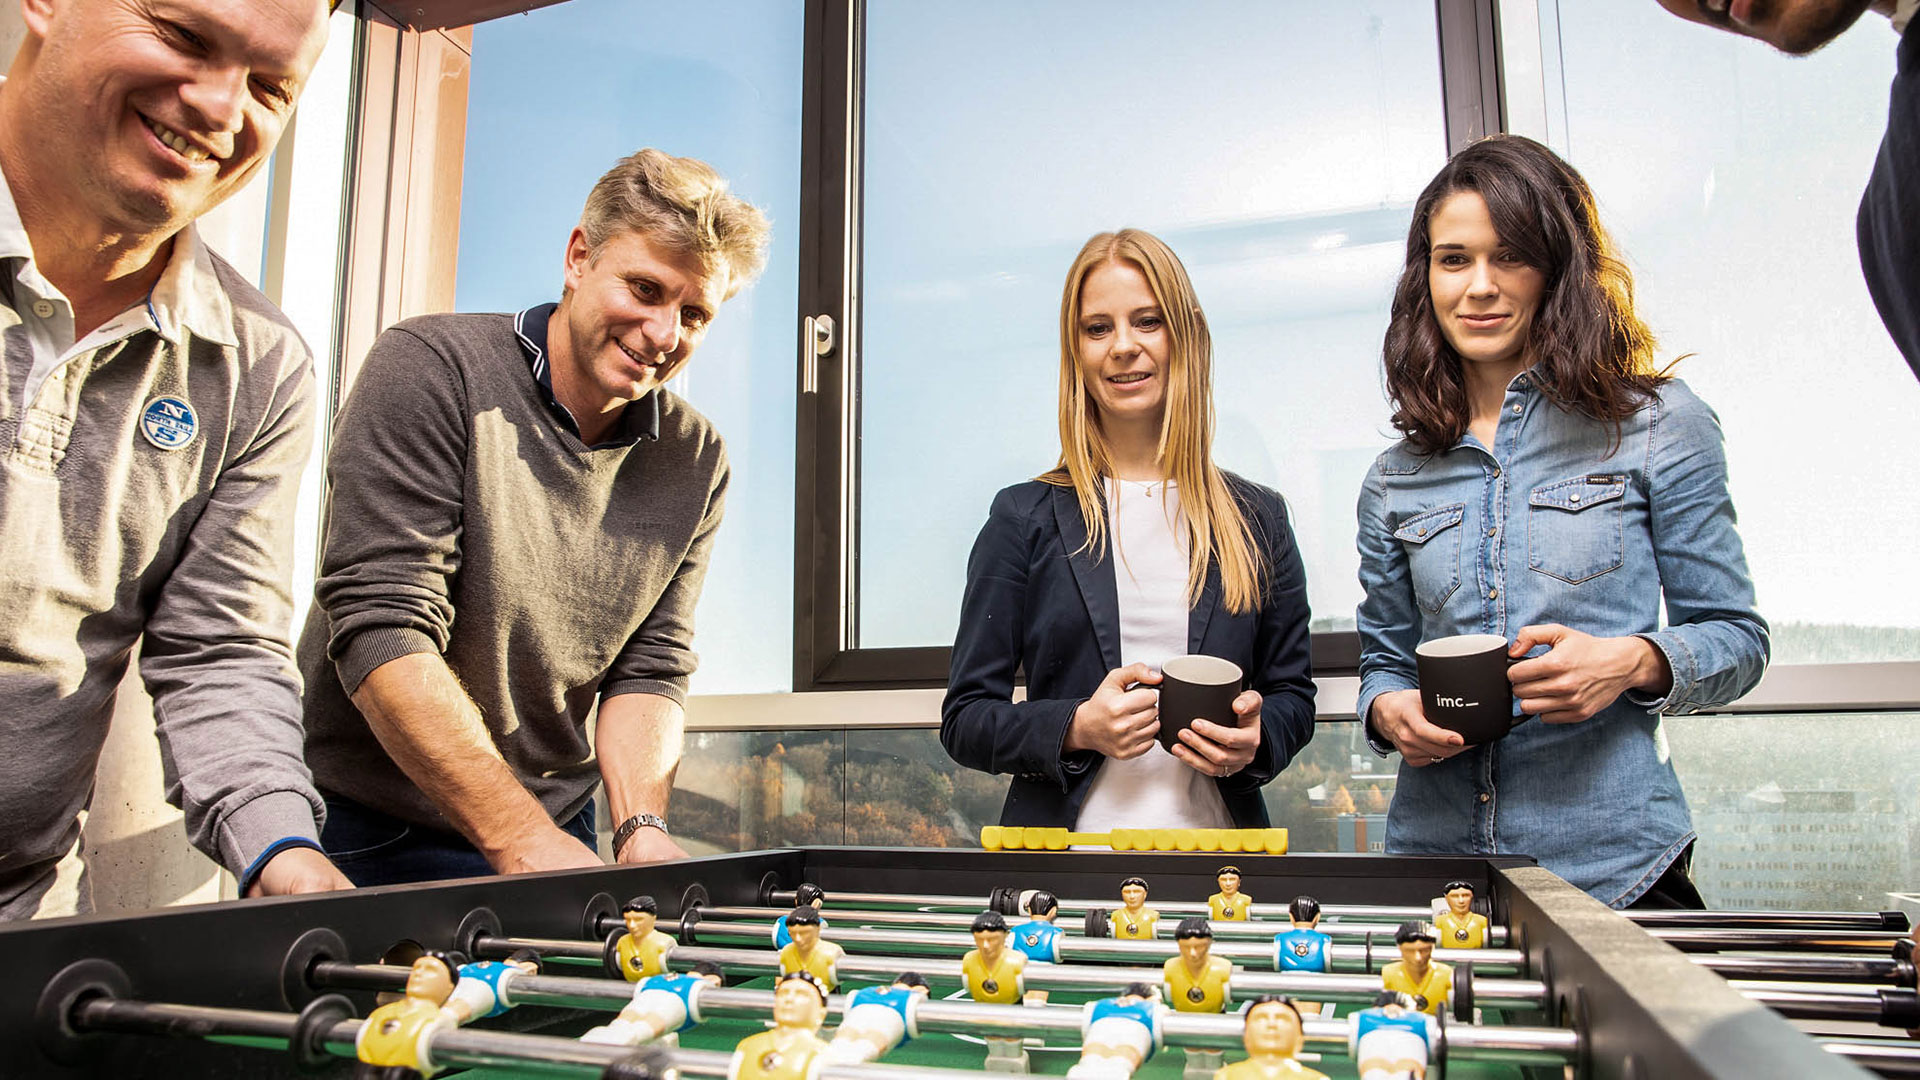 imc employees playing table football